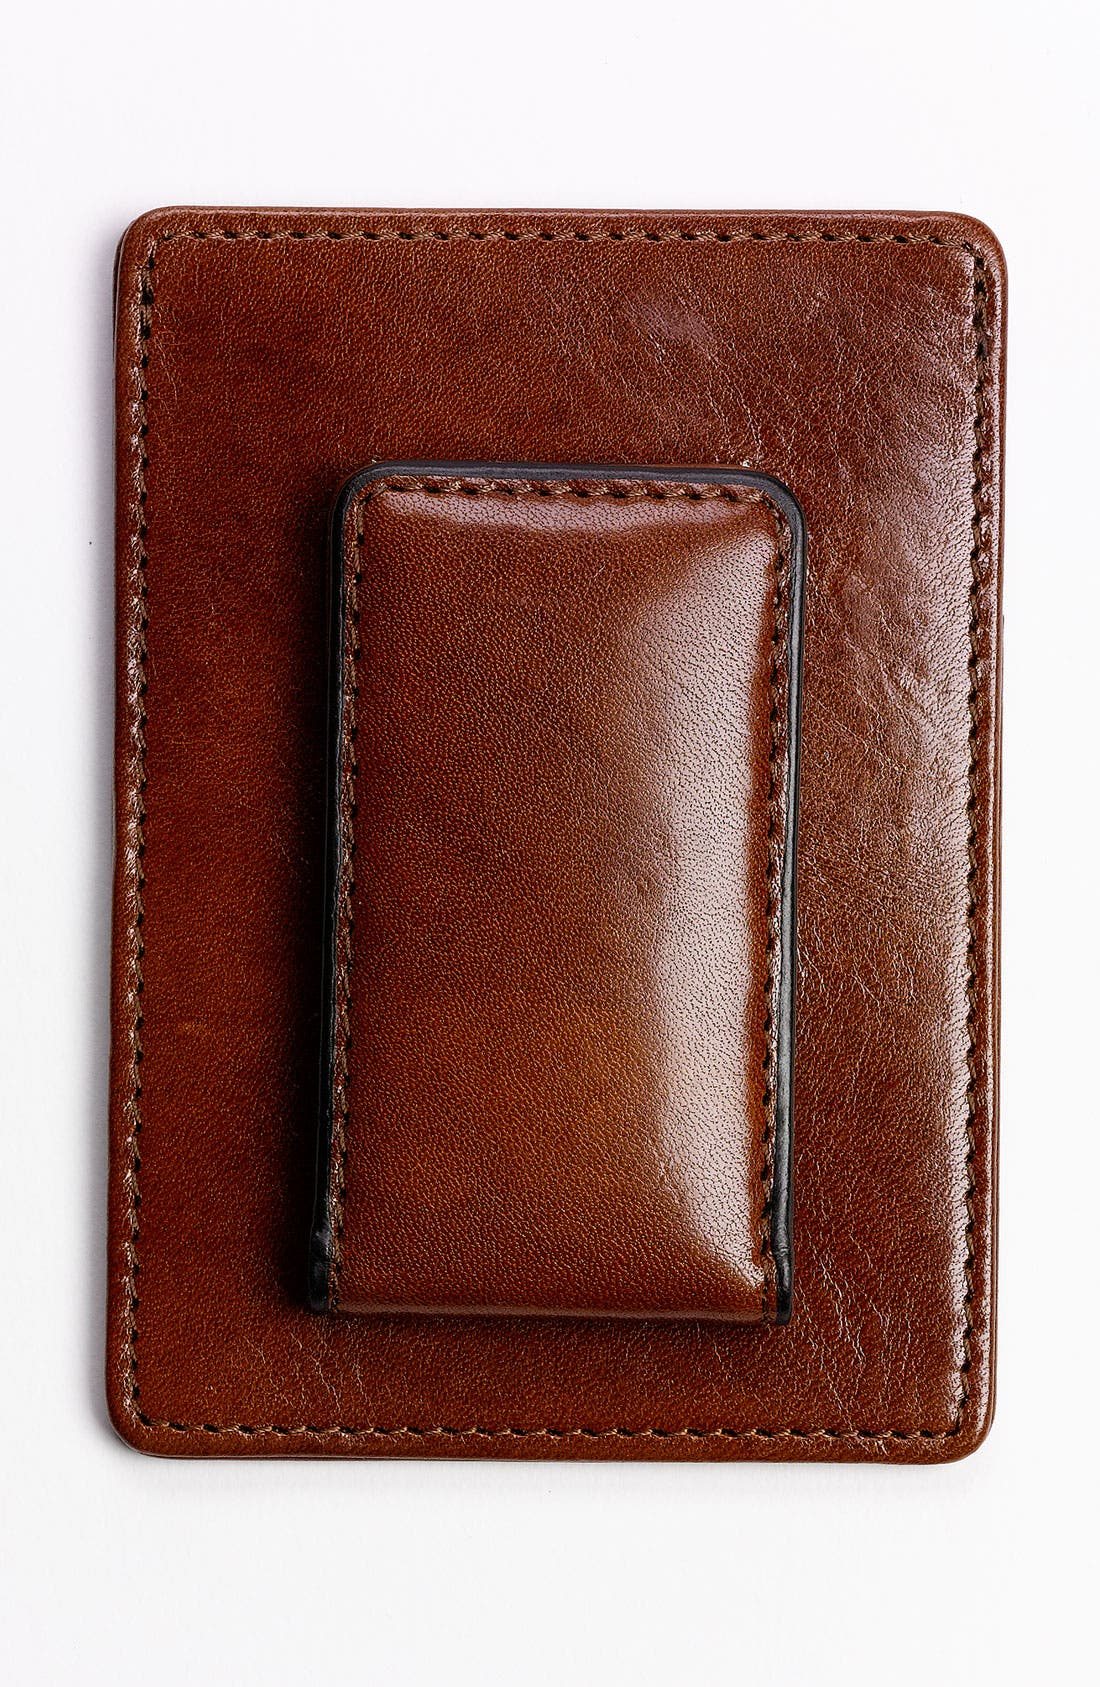 'Old Leather' Front Pocket Wallet,                             Alternate thumbnail 2, color,                             Amber